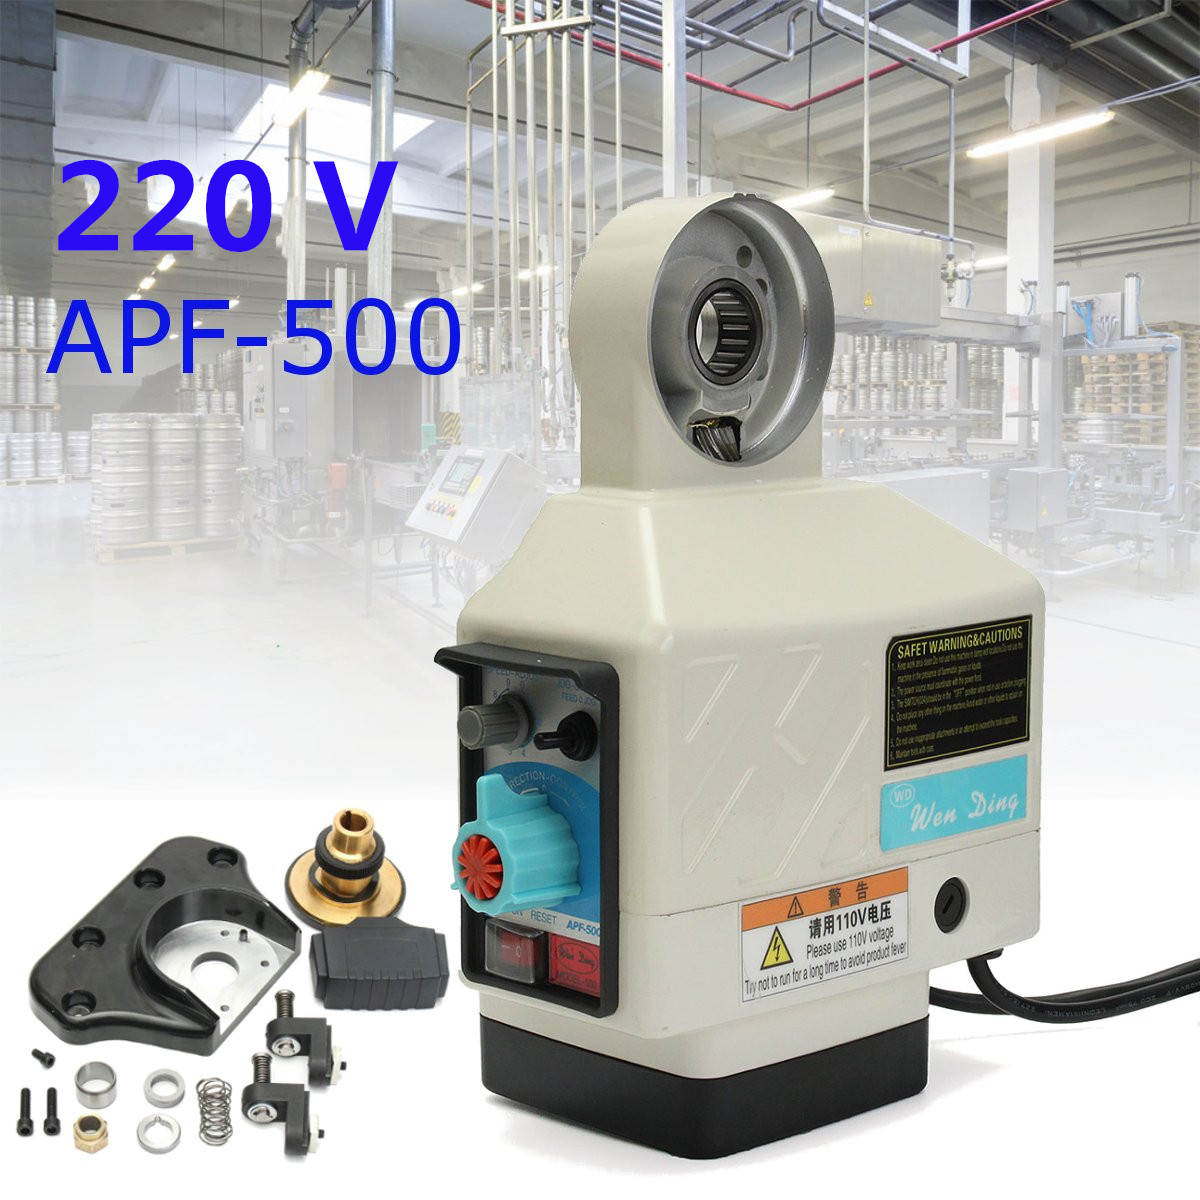 APF-500 220V Power Feed X-Axis Torques X Traverse Feeder Power Table Feed For X Y Z-axis